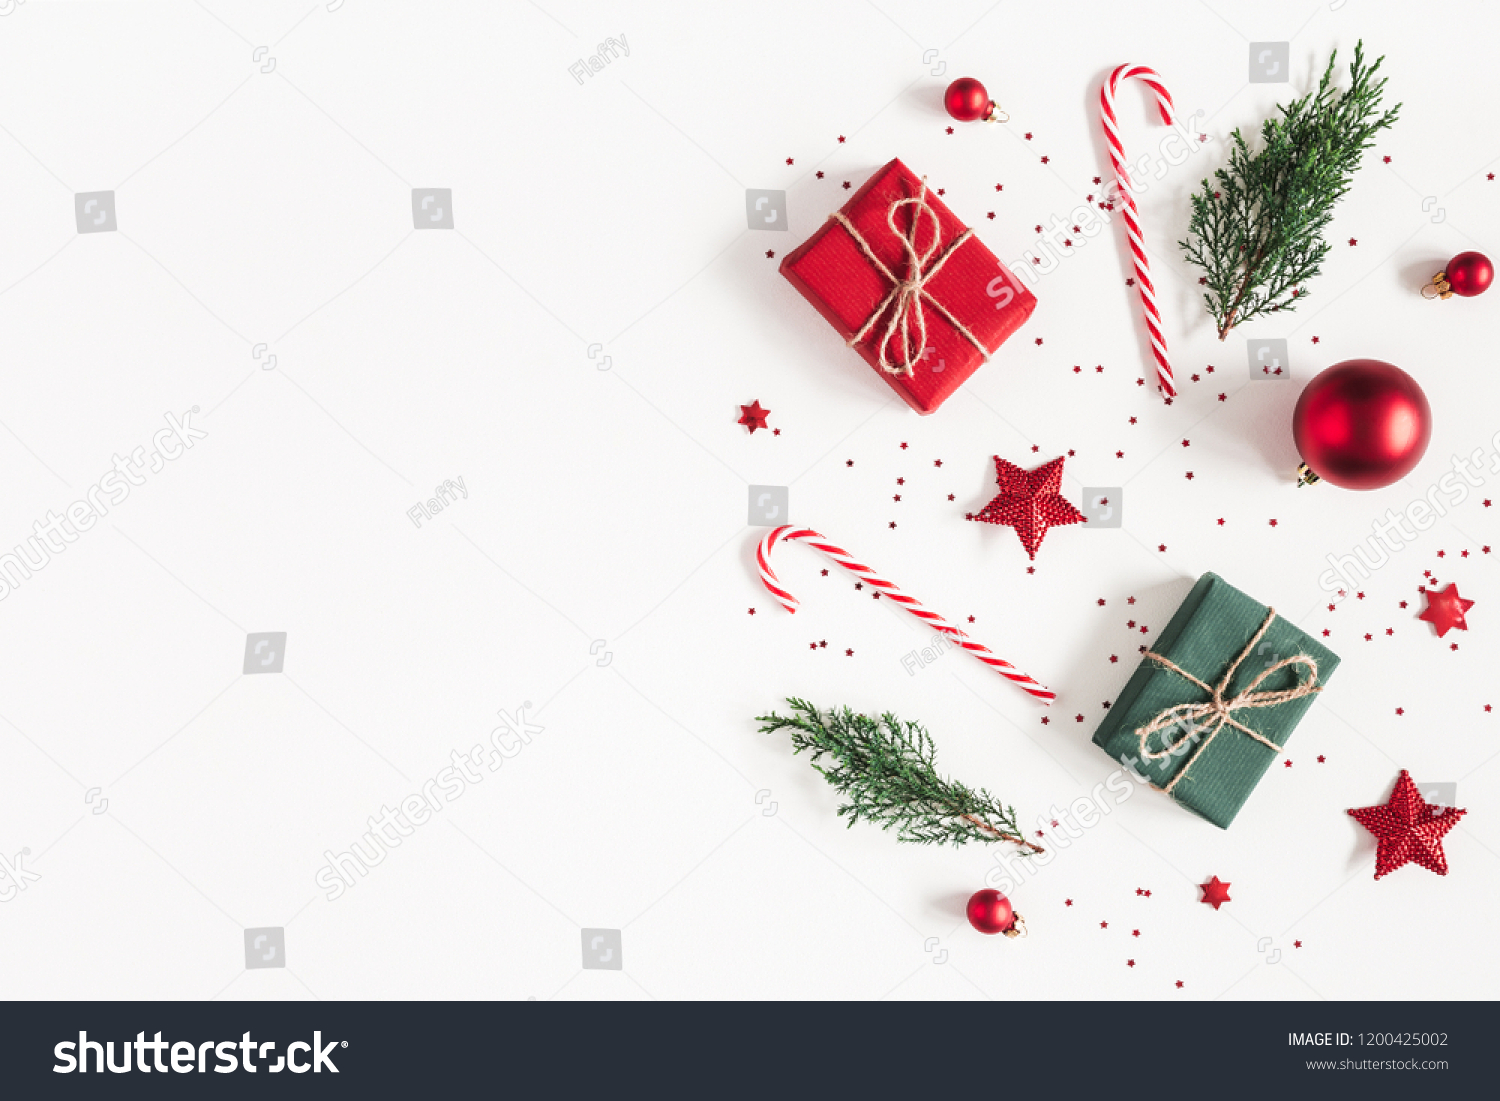 Christmas composition. Gifts, fir tree branches, red decorations on white background. Christmas, winter, new year concept. Flat lay, top view, copy space #1200425002